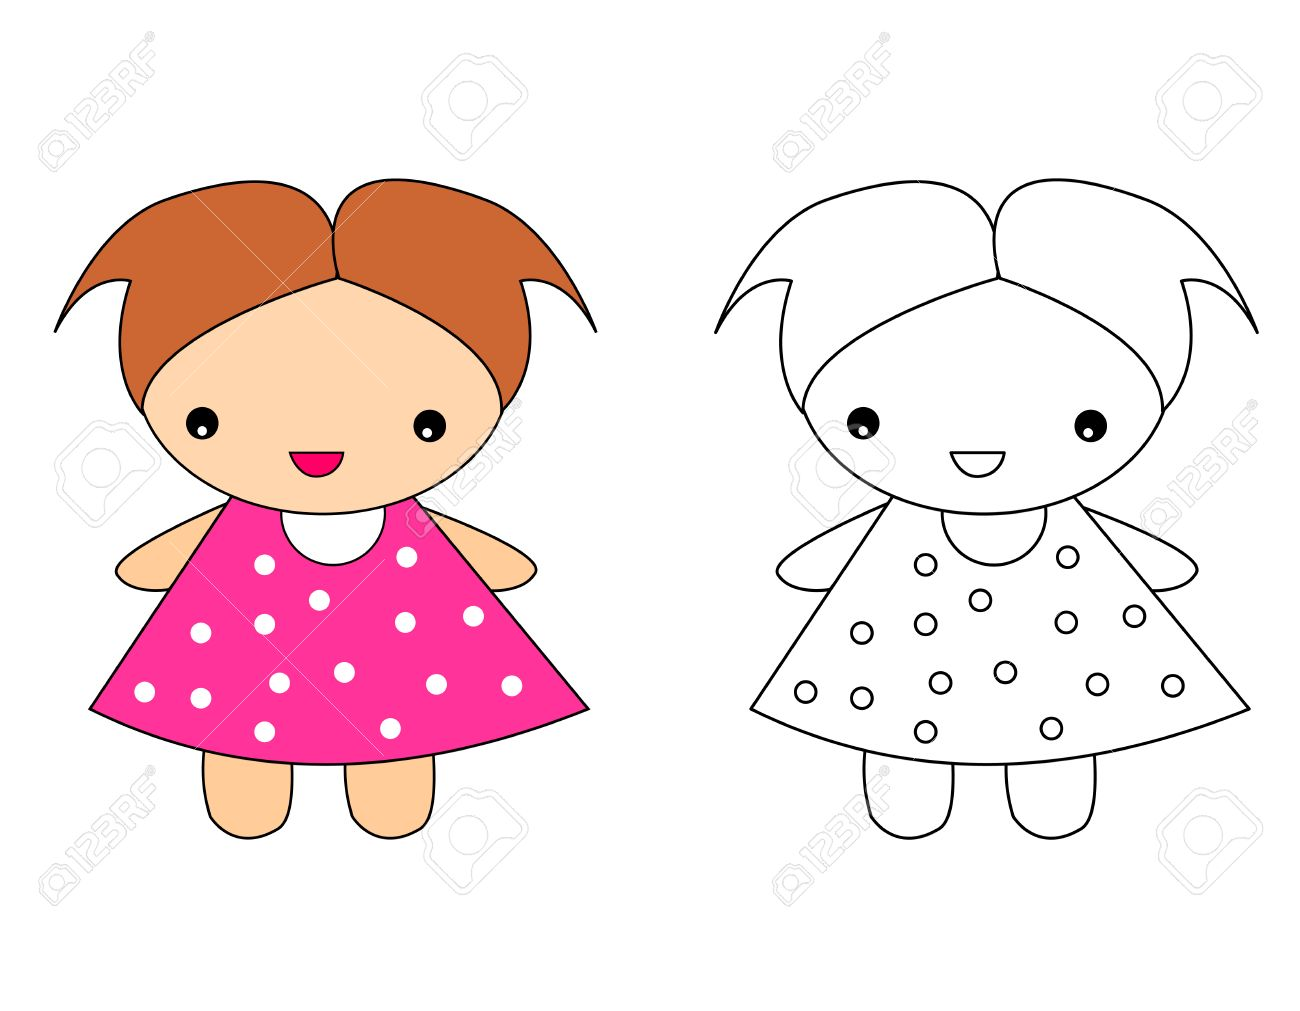 Cute Doll Toy Illustration For Pre School Kids Coloring Activity With Sample Colored Image Stock